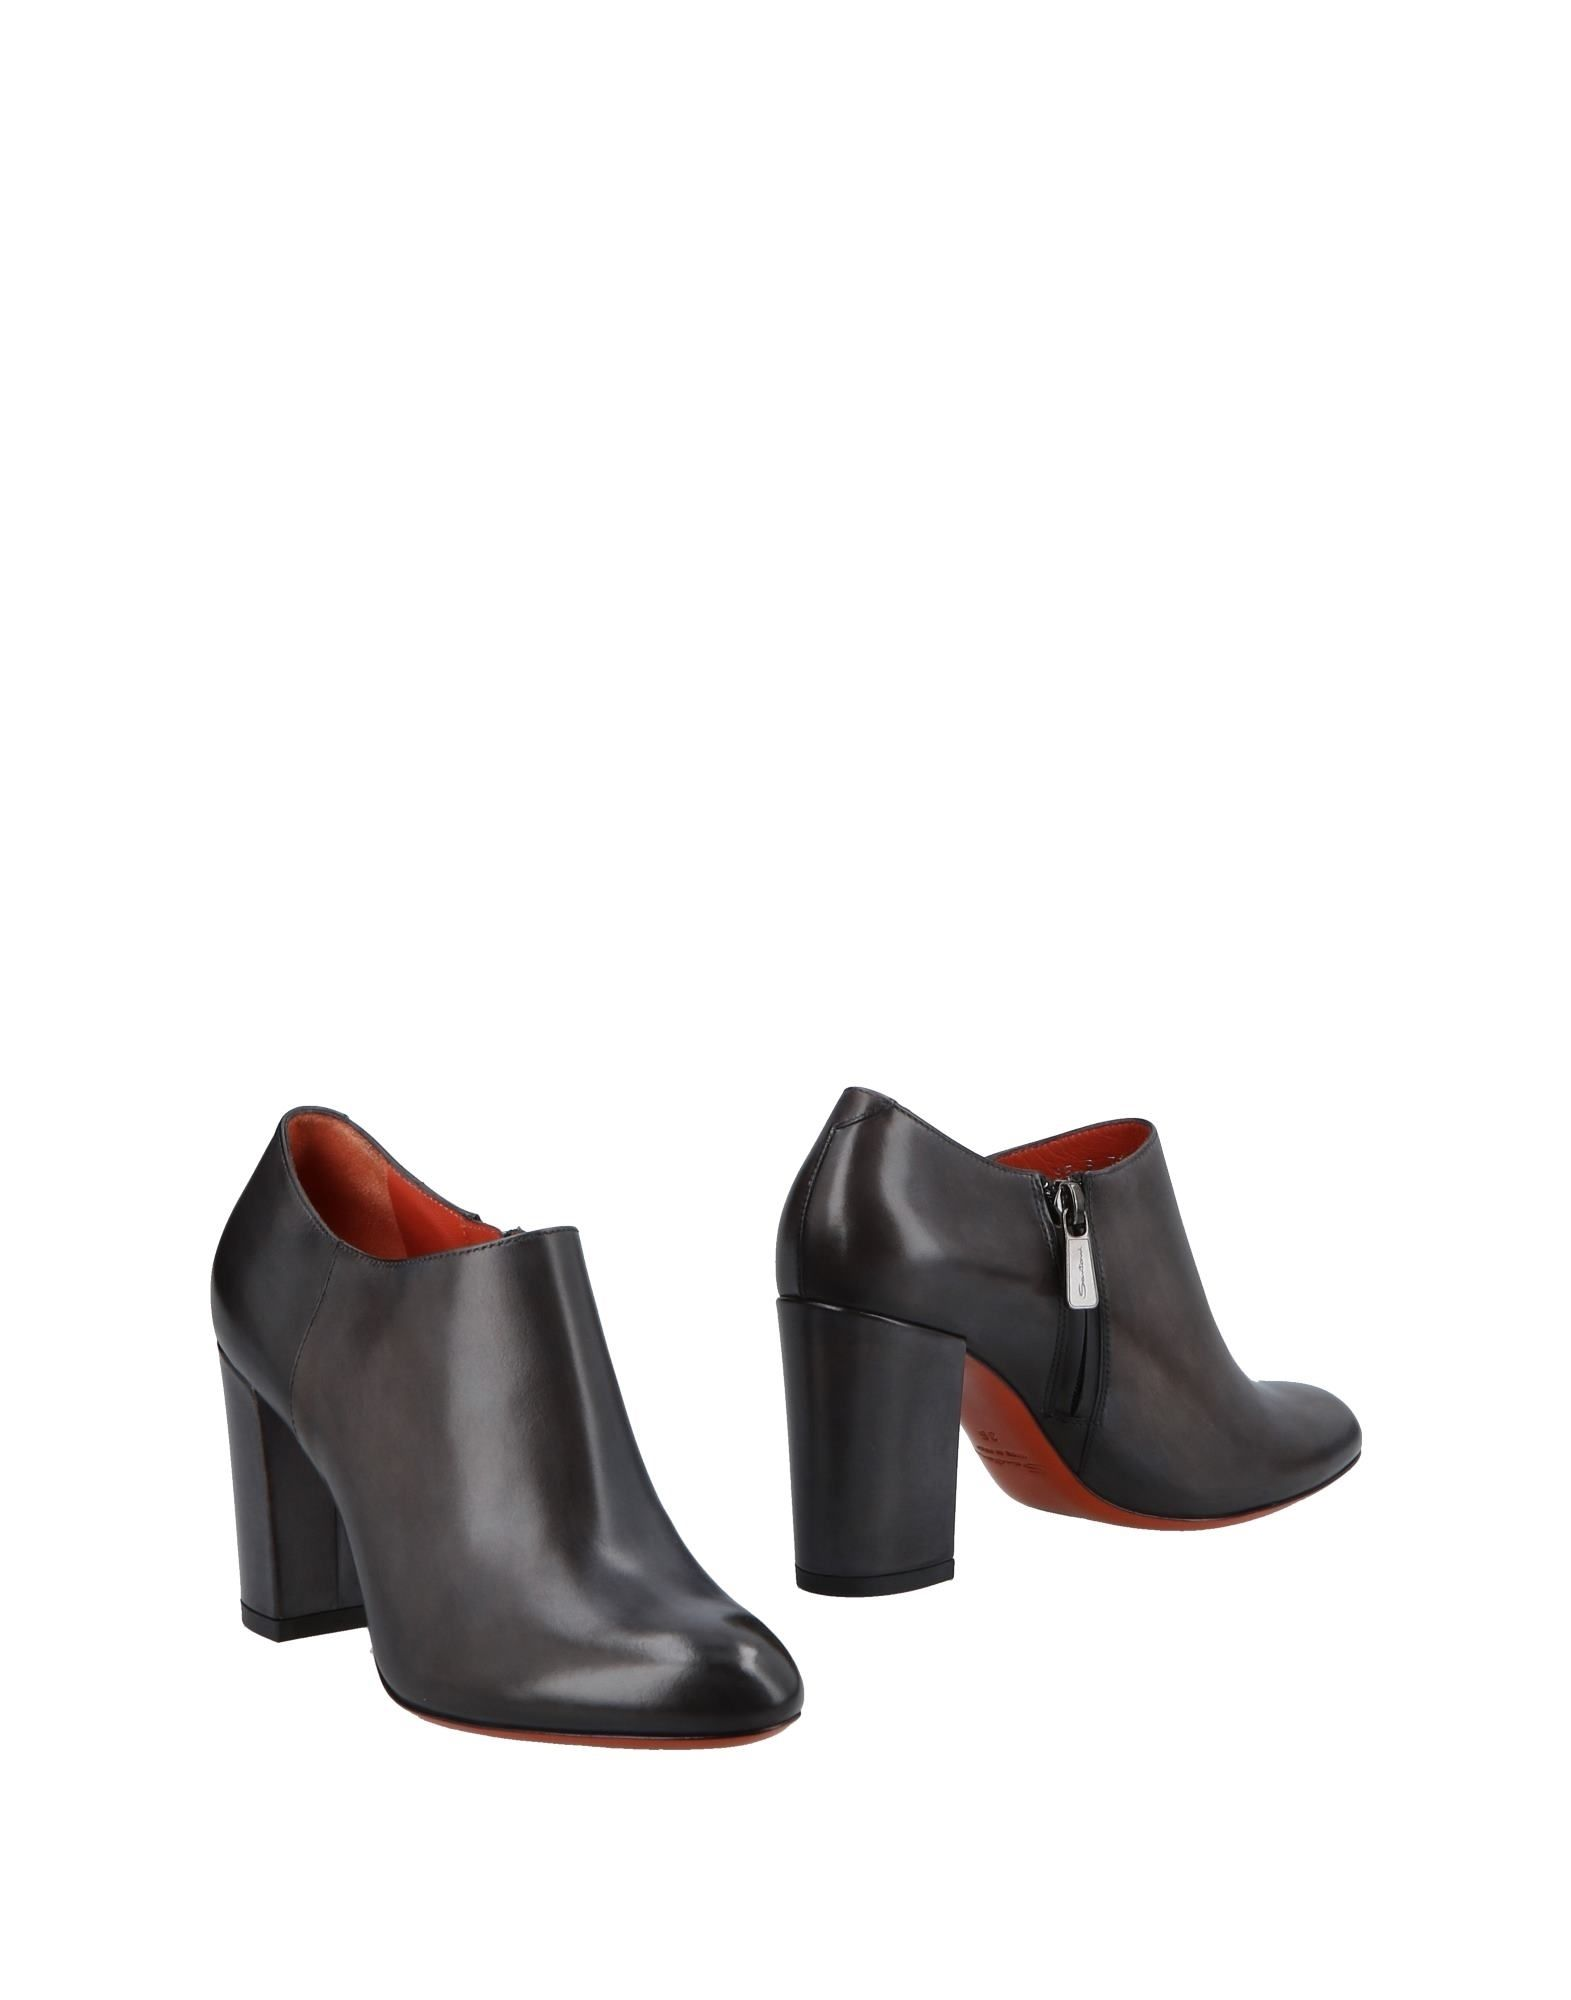 Santoni Ankle Ankle Boot - Women Santoni Ankle Ankle Boots online on  Canada - 11307555AO 06483a